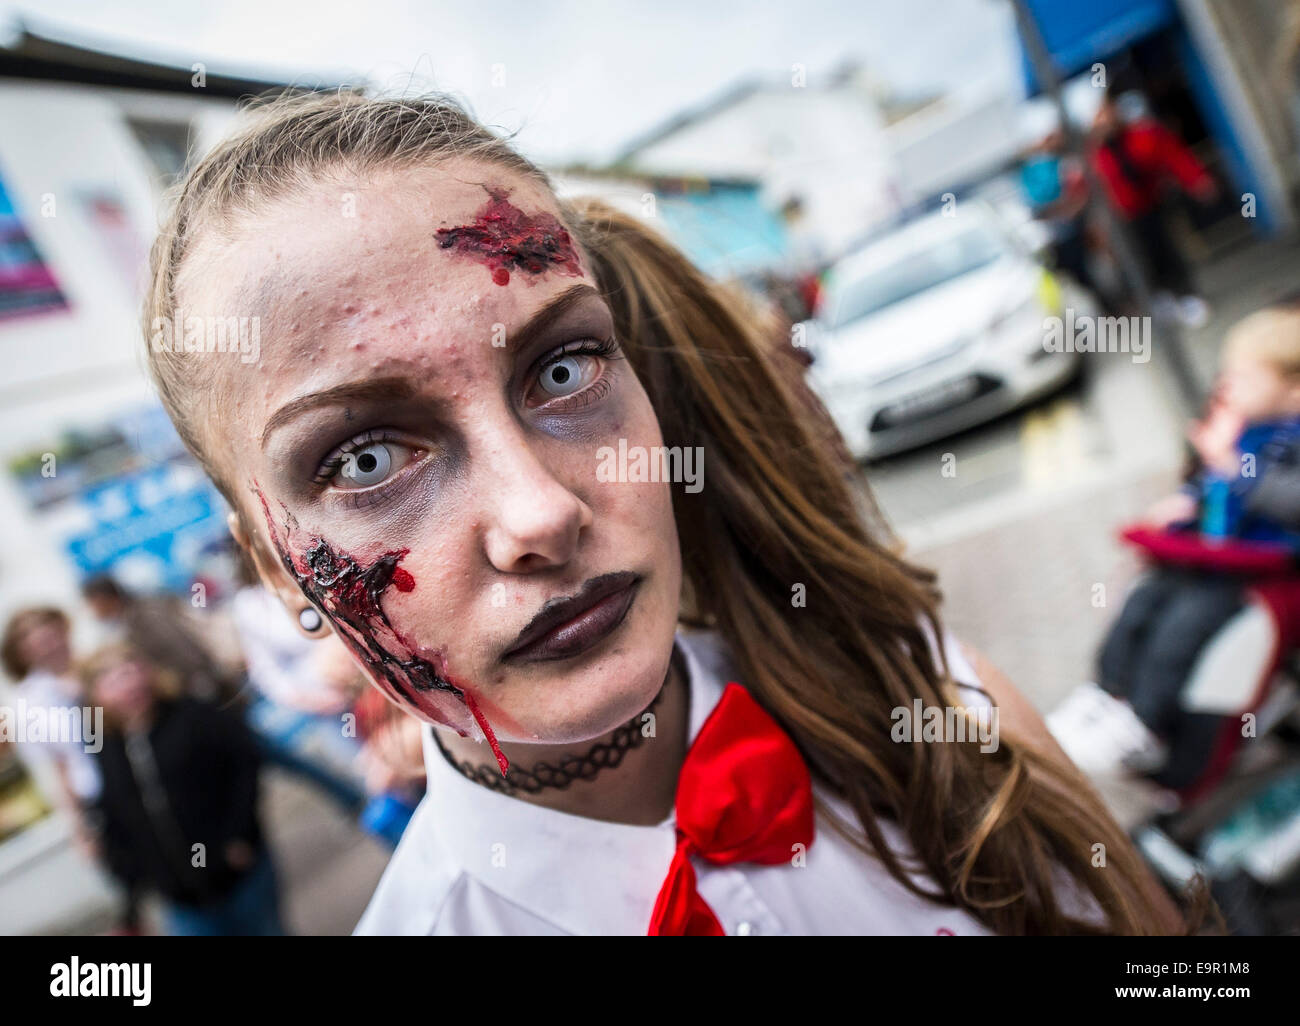 Newquay, Cornwall. 31st October 204.  Cornish zombies parade along Newquay High Street. Credit:  Gordon Scammell/Alamy - Stock Image